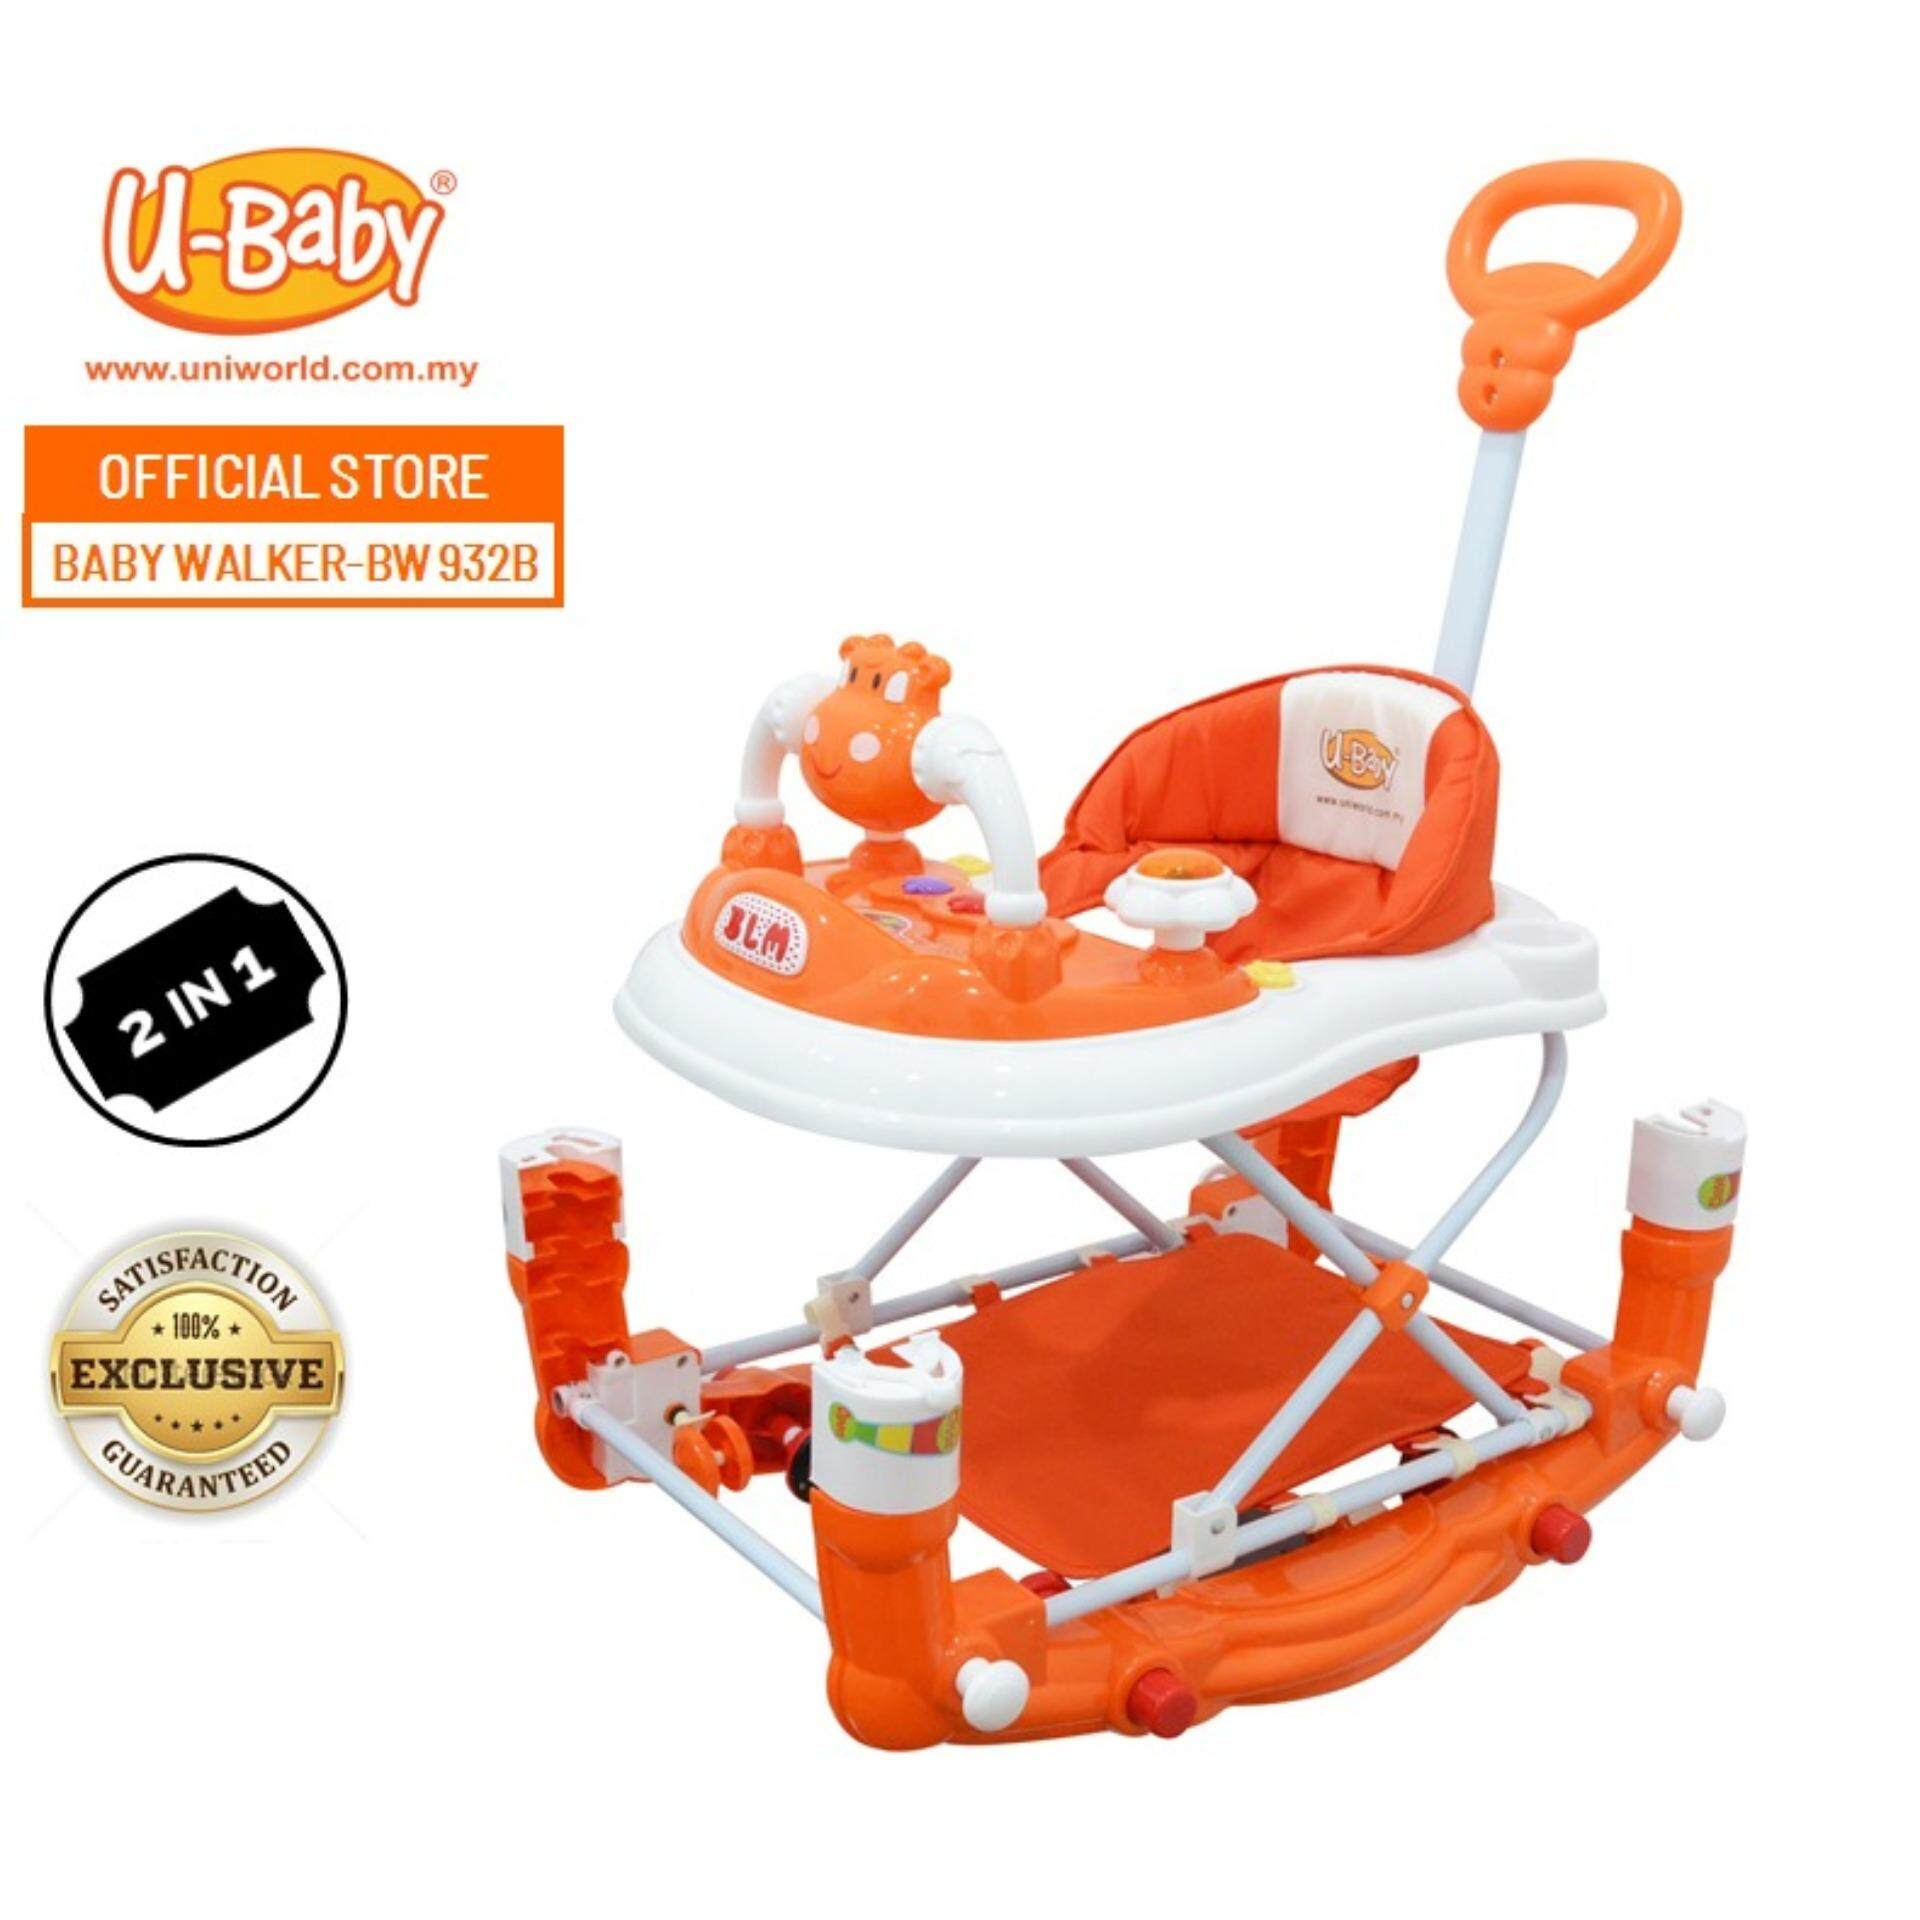 U-Baby BW932B Baby Walker (Orange)